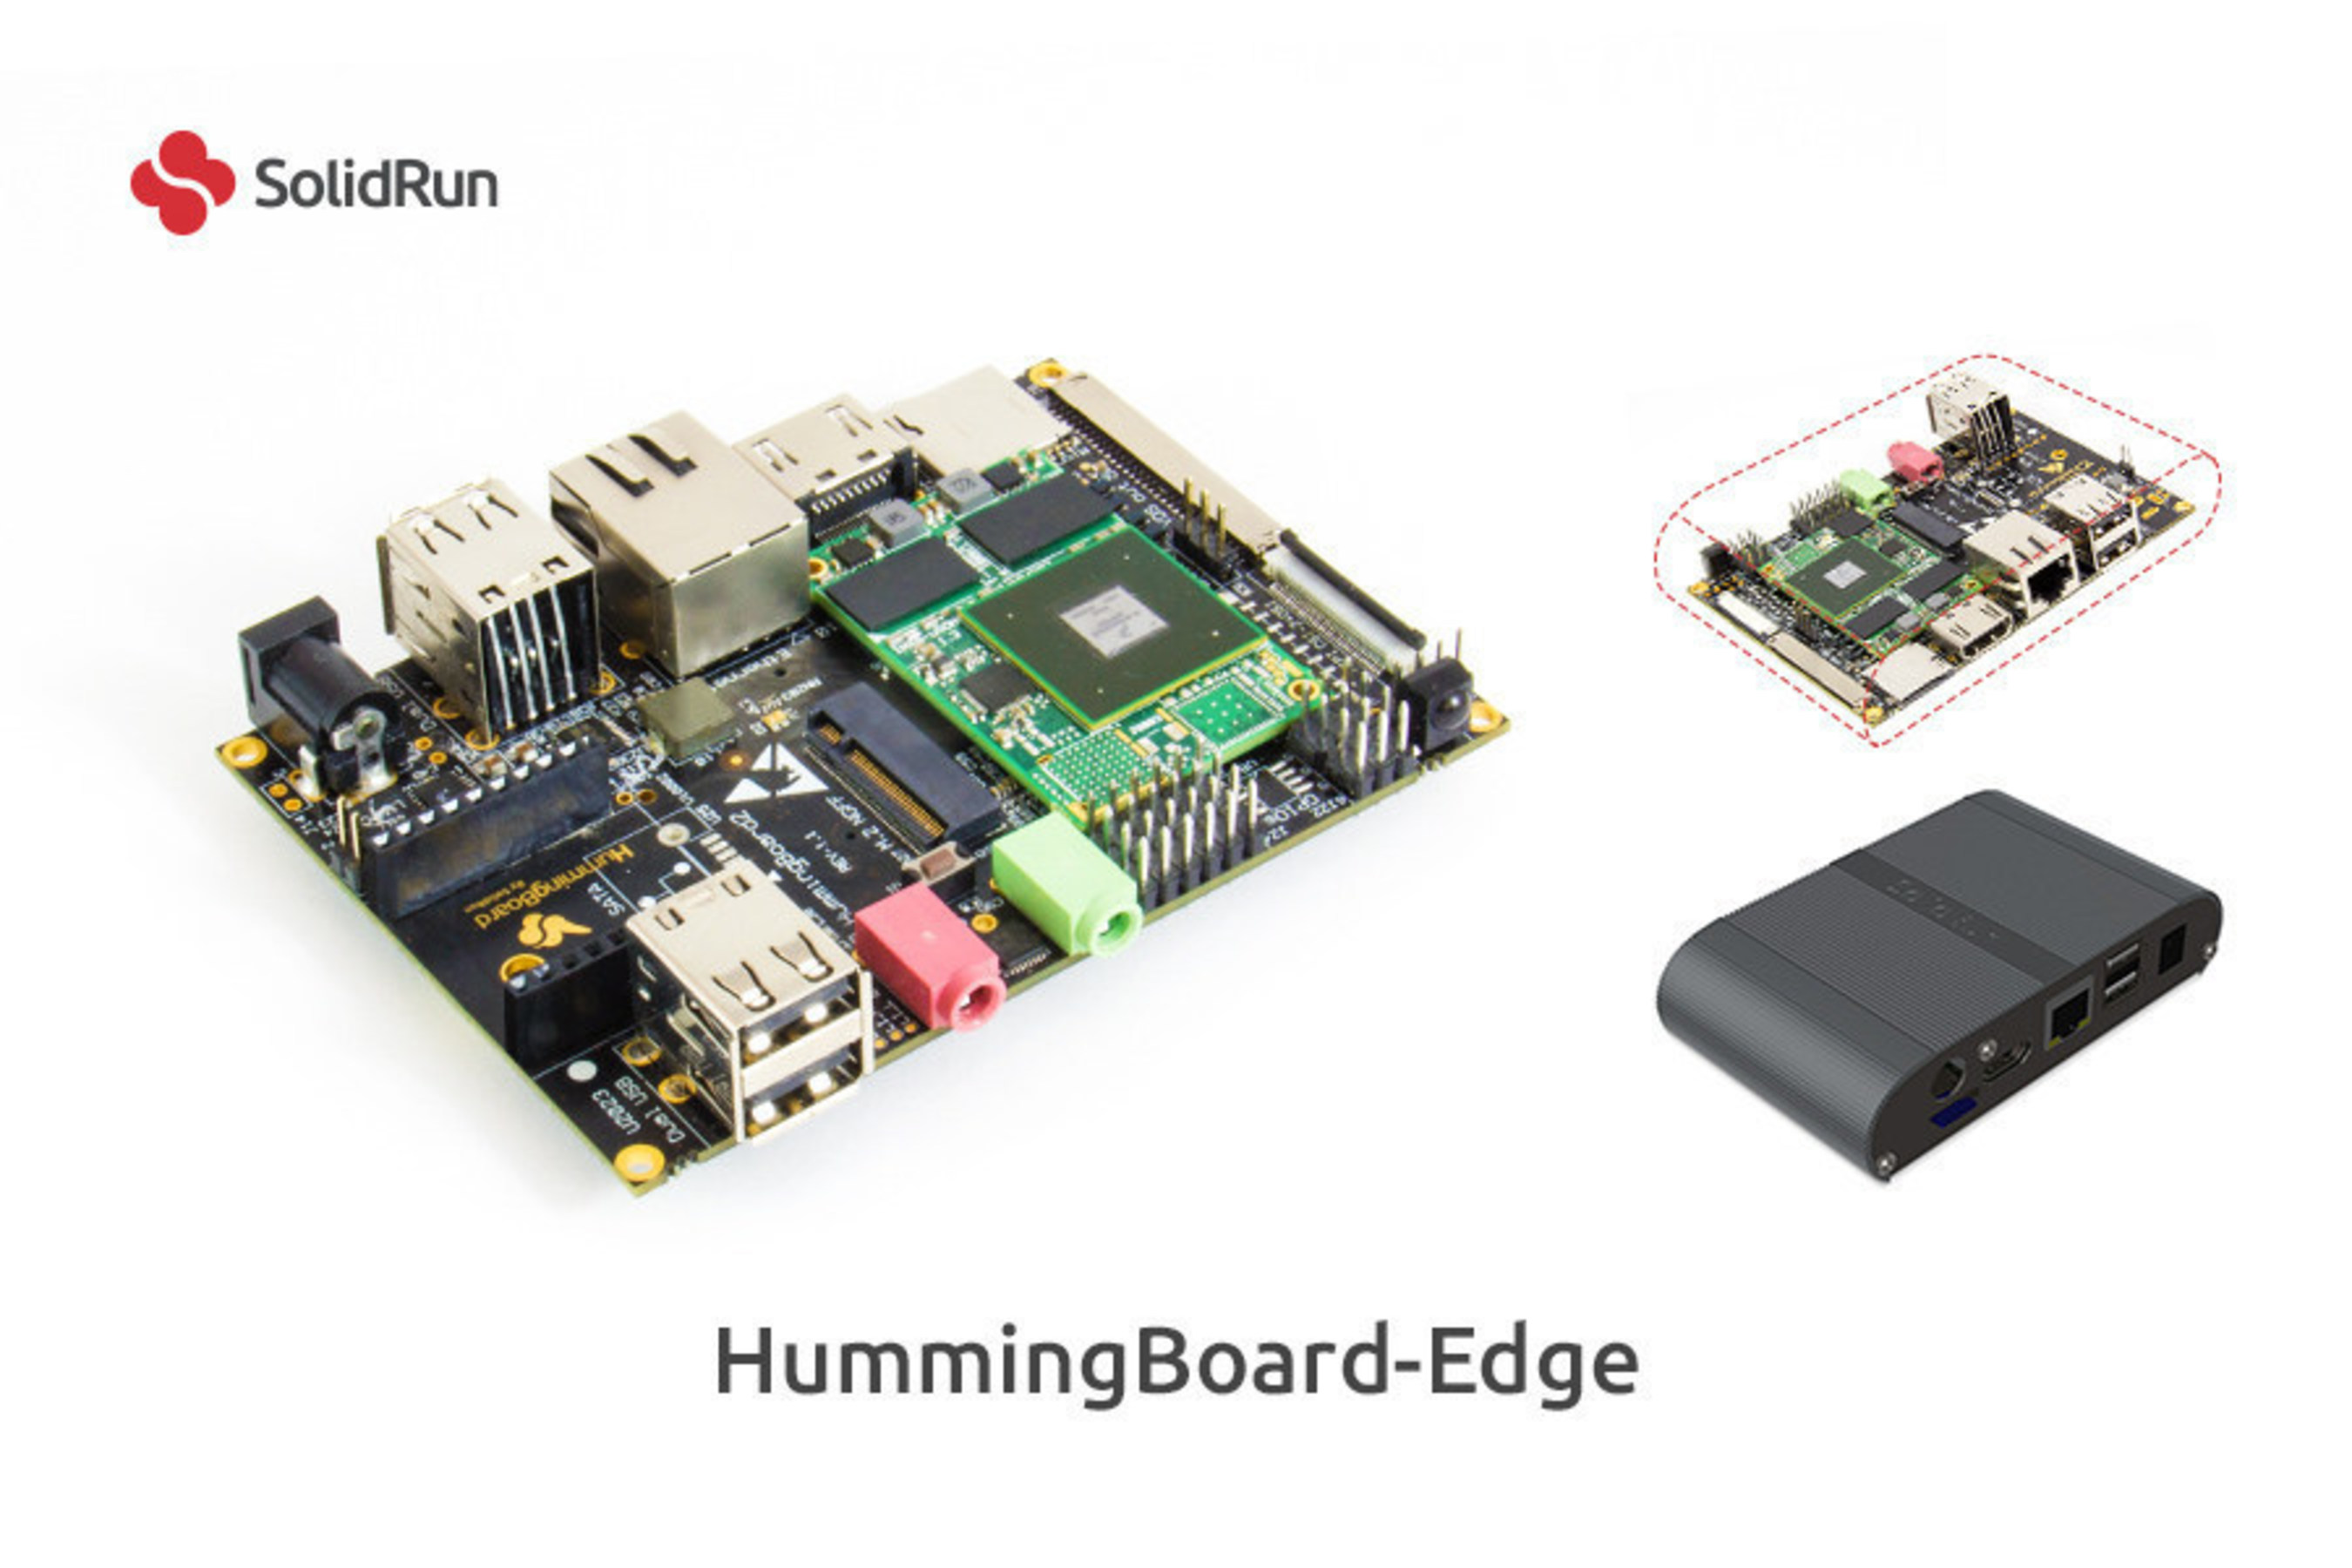 SolidRun Ltd. announces its HummingBoard-Edge computer with industry's highest feature density for IoT Smart Edge Applications.